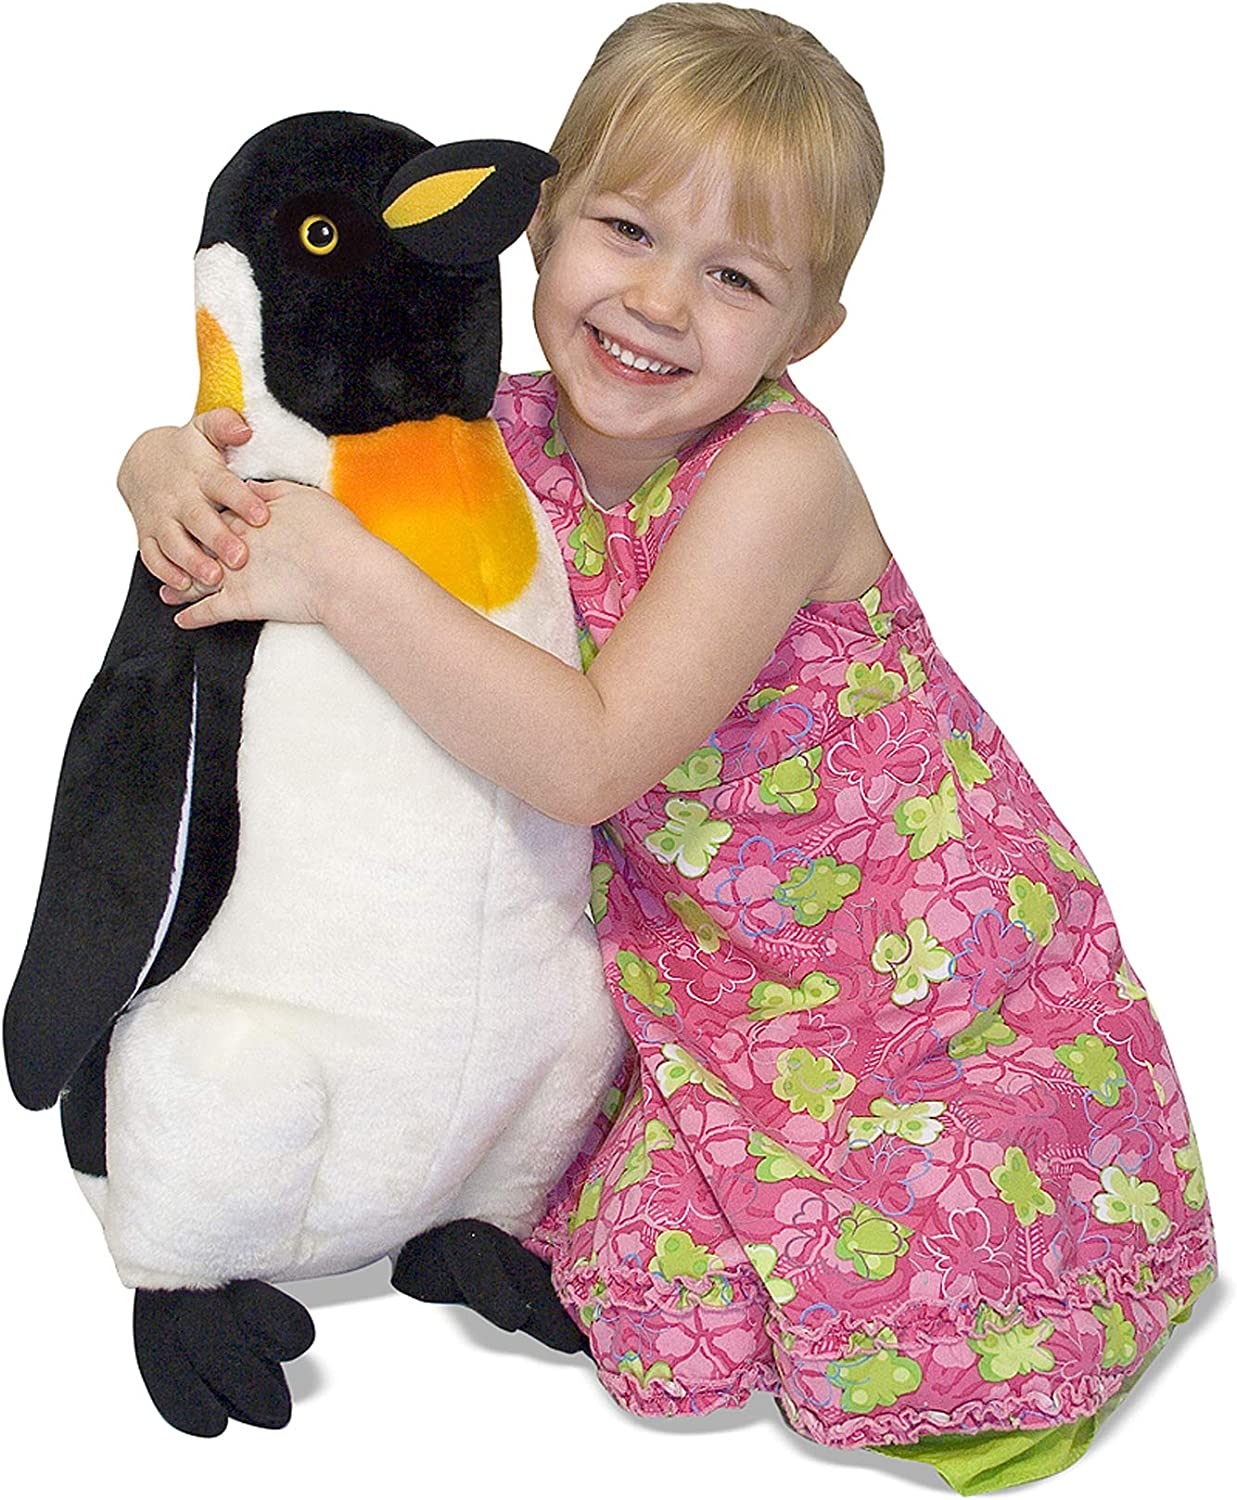 Top 15 Best Cute Stuffed Animals (2020 Reviews & Buying Guide) 15